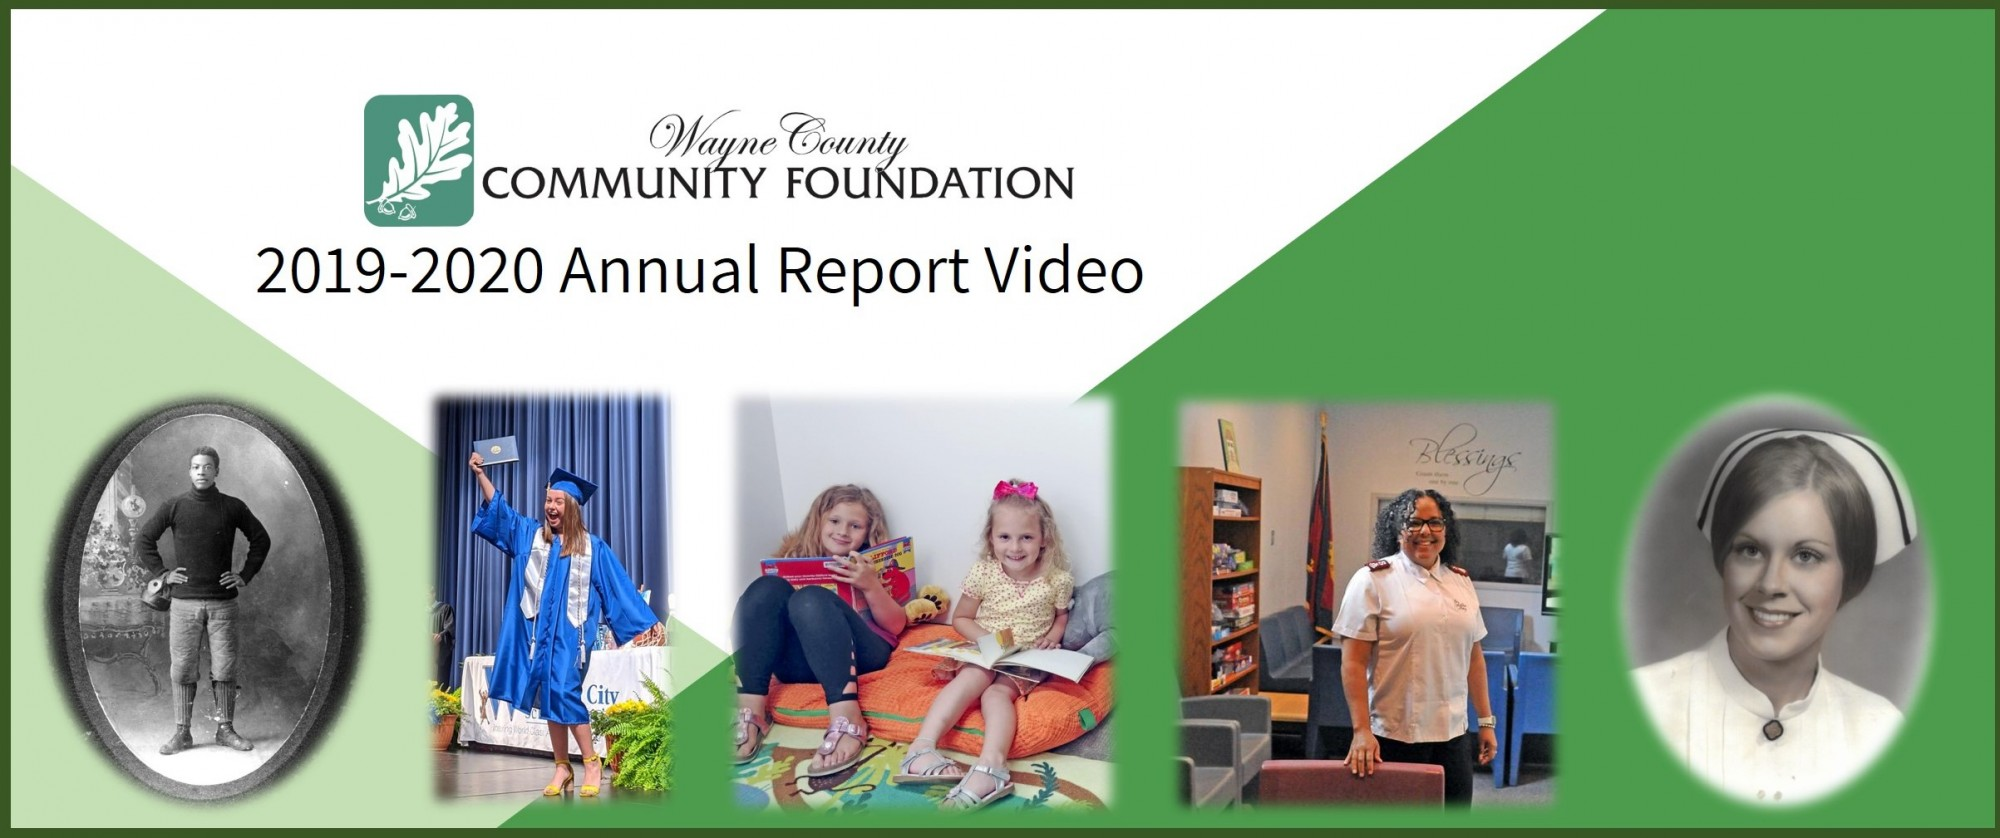 WCCF 2019-2020 Annual Report